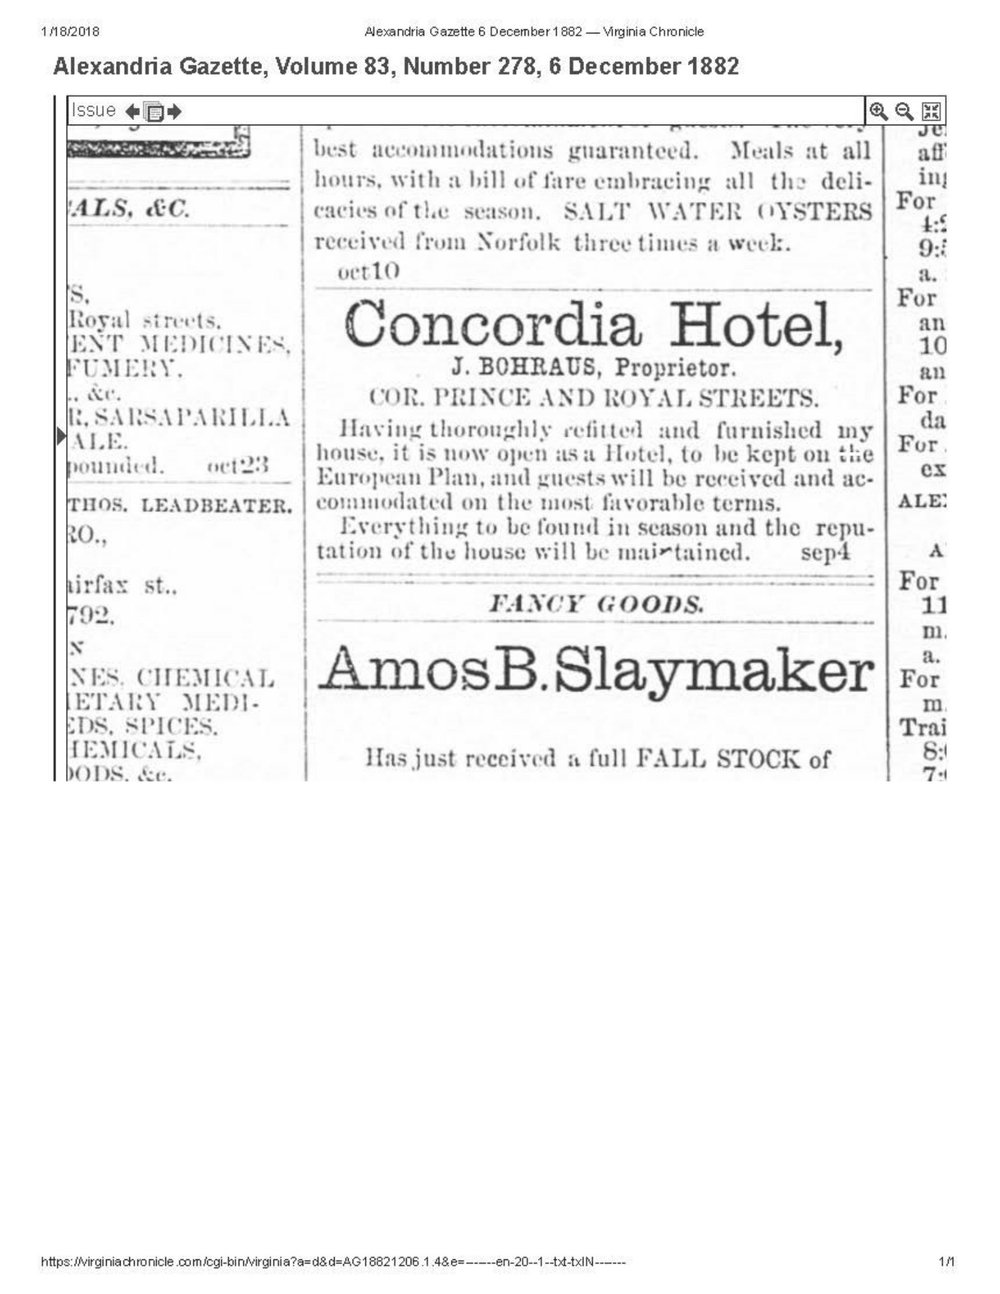 From Alexandria Gazette 12/6/1882  - an ad for the Concordia Hotel